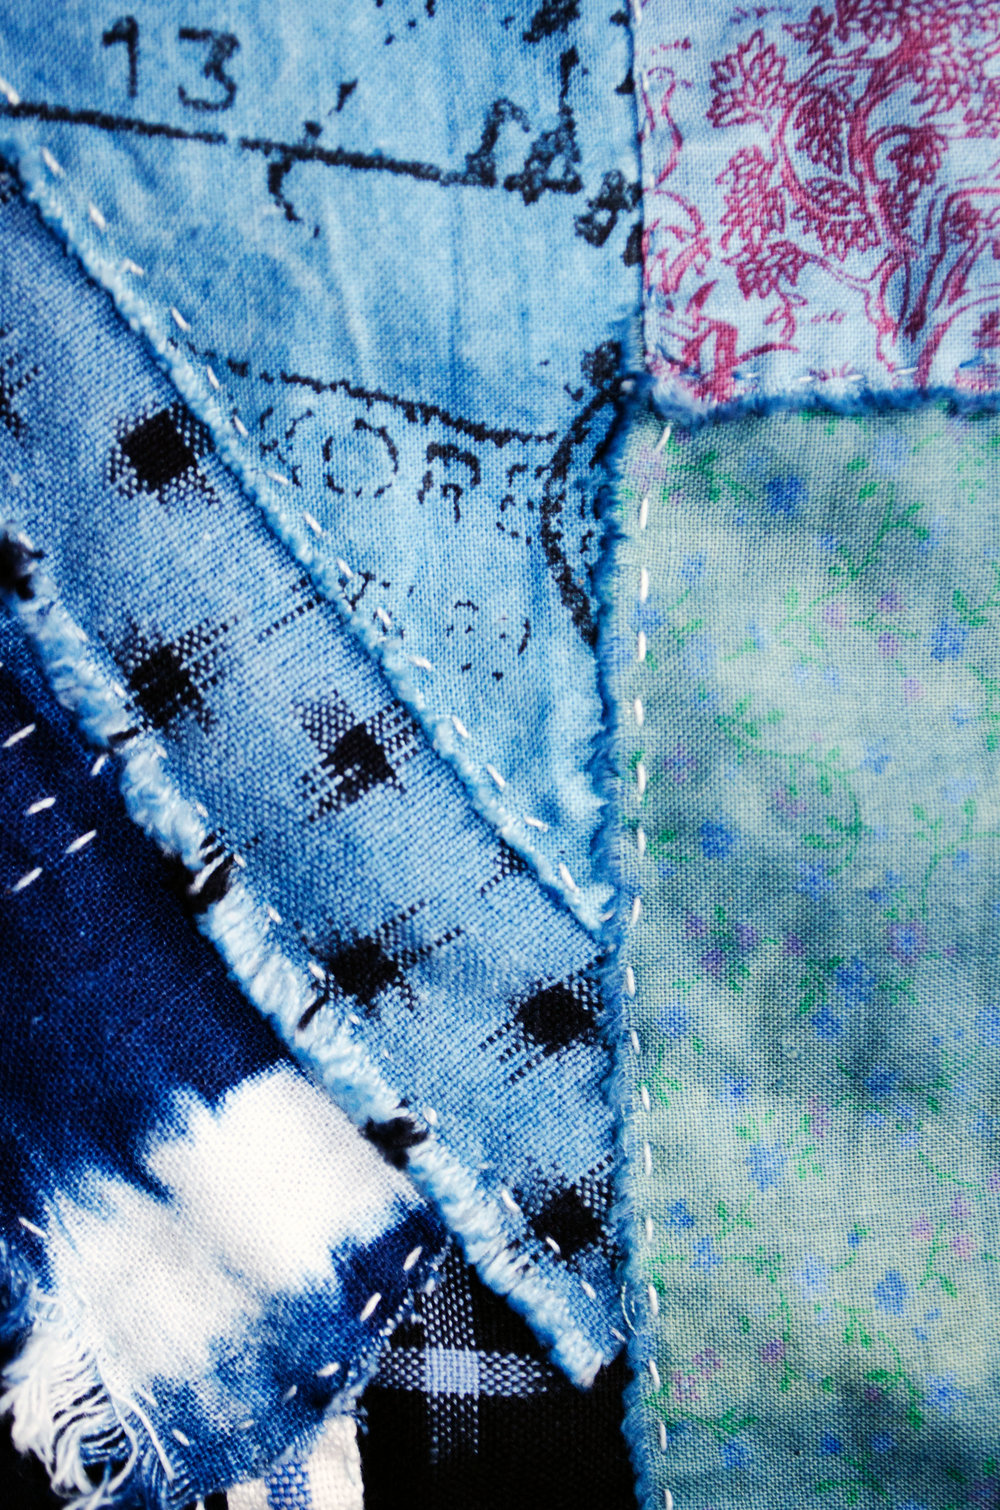 overdyed cotton stitched onto ikat, stitched onto ikat, stitched onto shibori linen